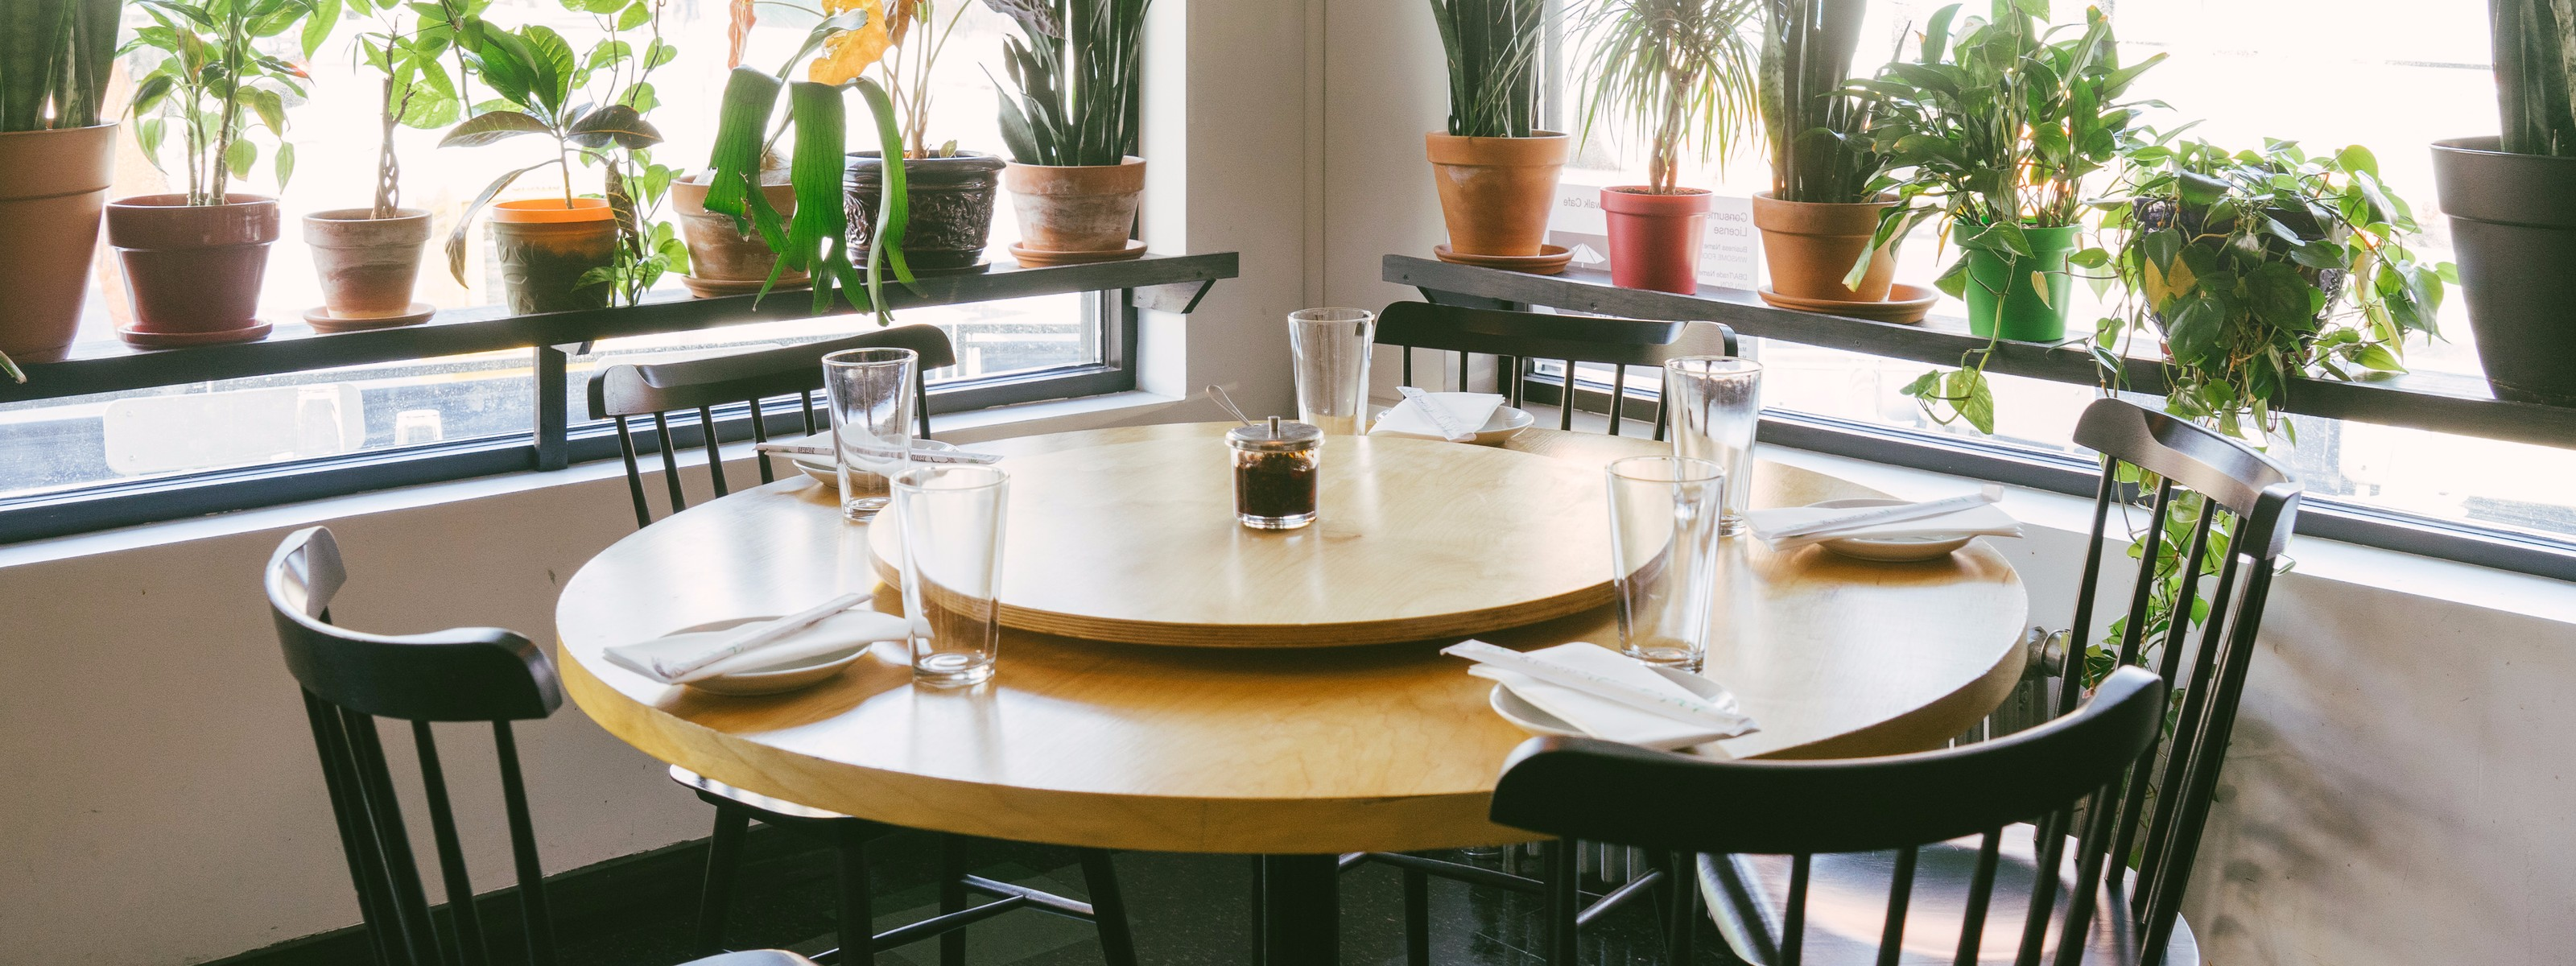 Best Restaurants For Group Dinners Nyc